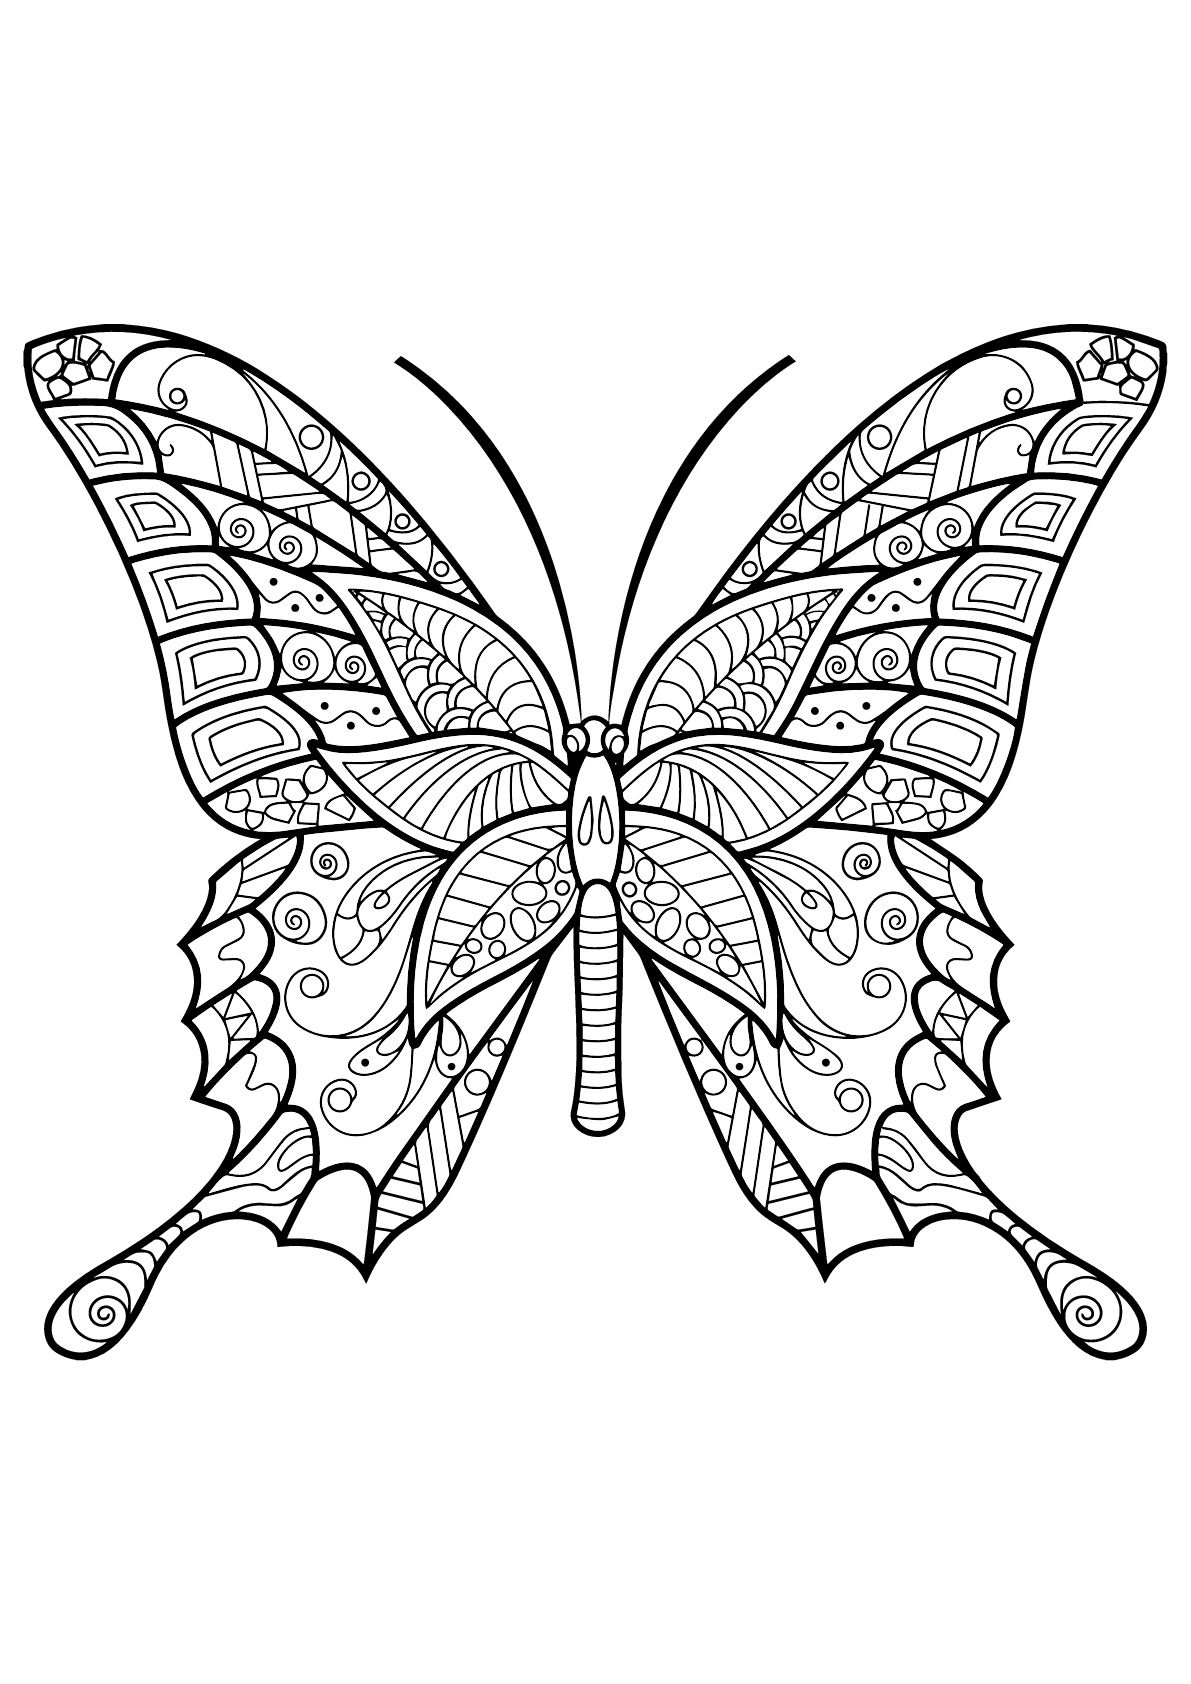 Pin By Andrea Godwin On I Can Make That Insect Coloring Pages Butterfly Coloring Page Butterfly Printable